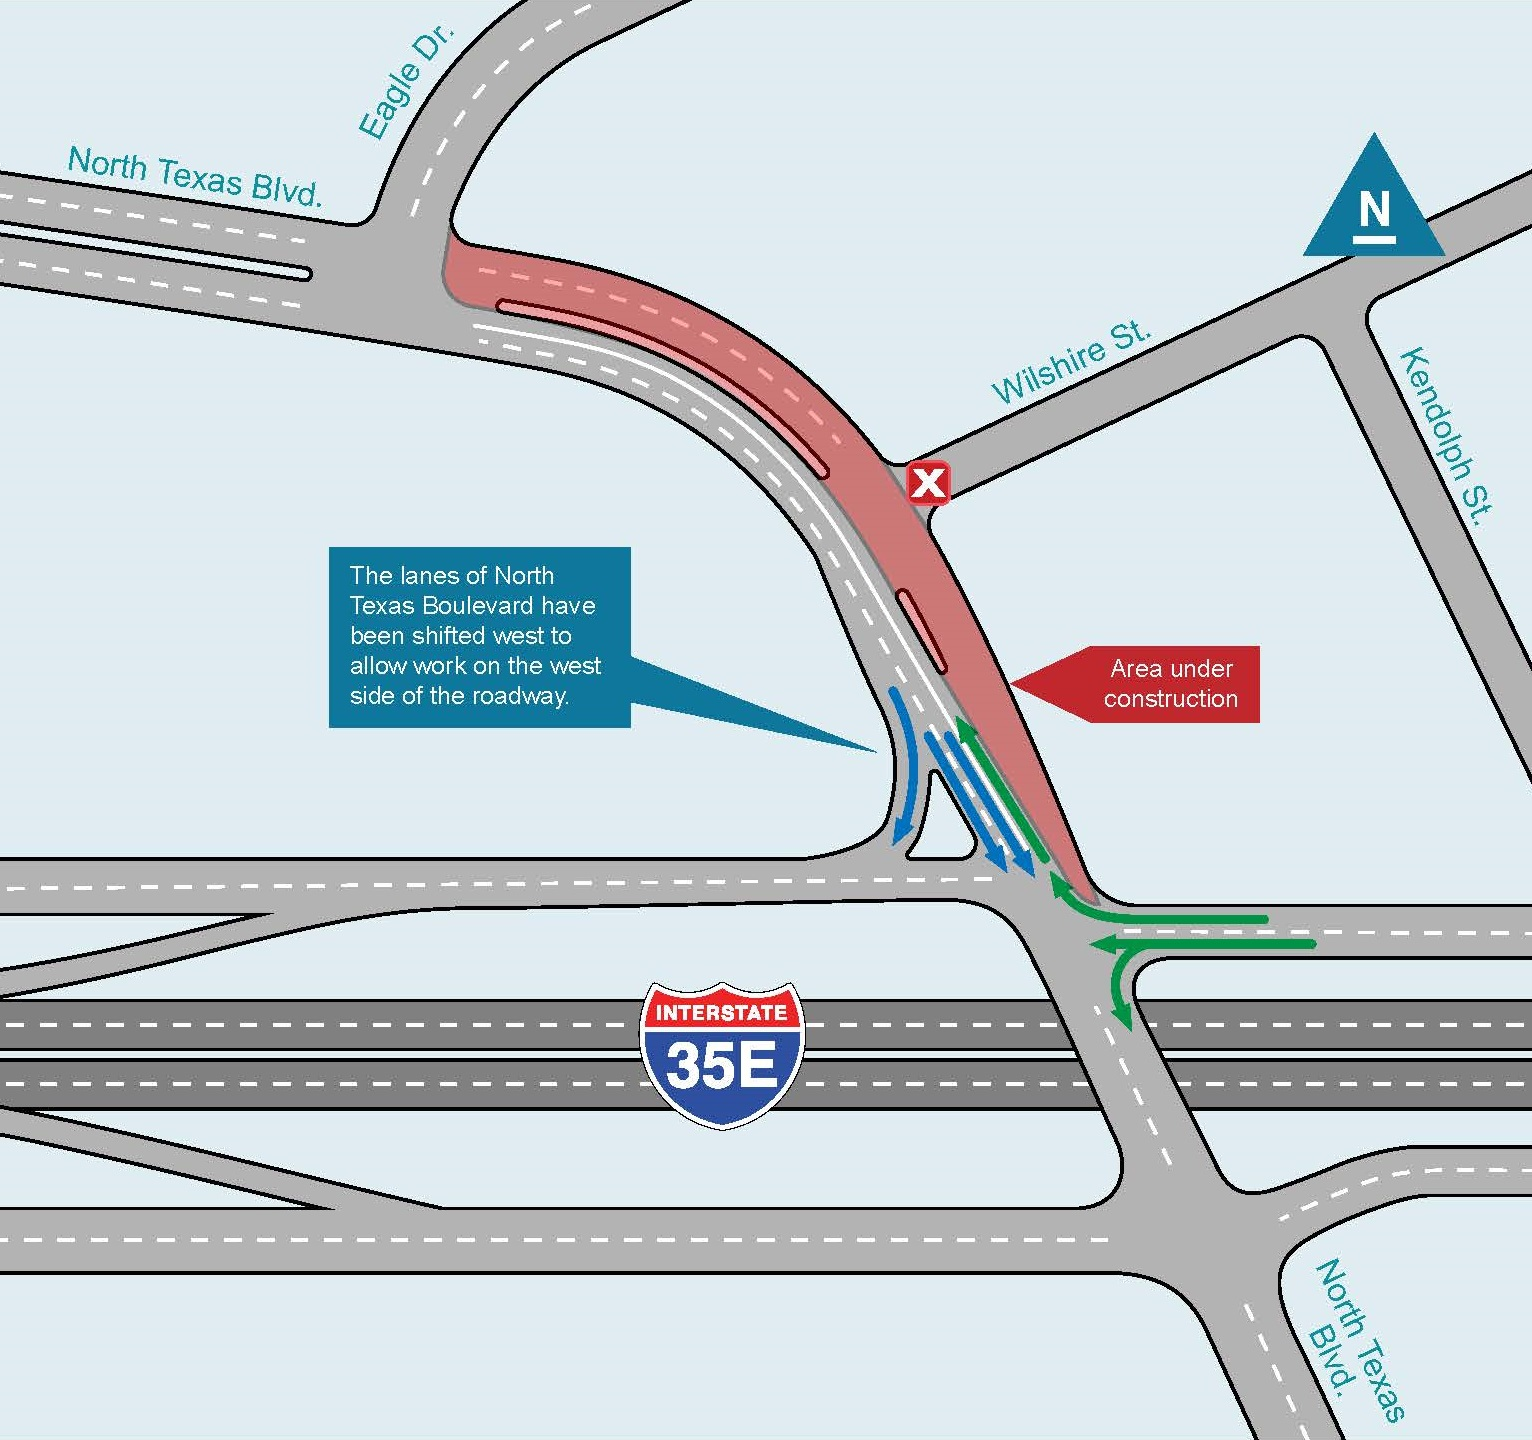 I-35E construction near North Texas Blvd map